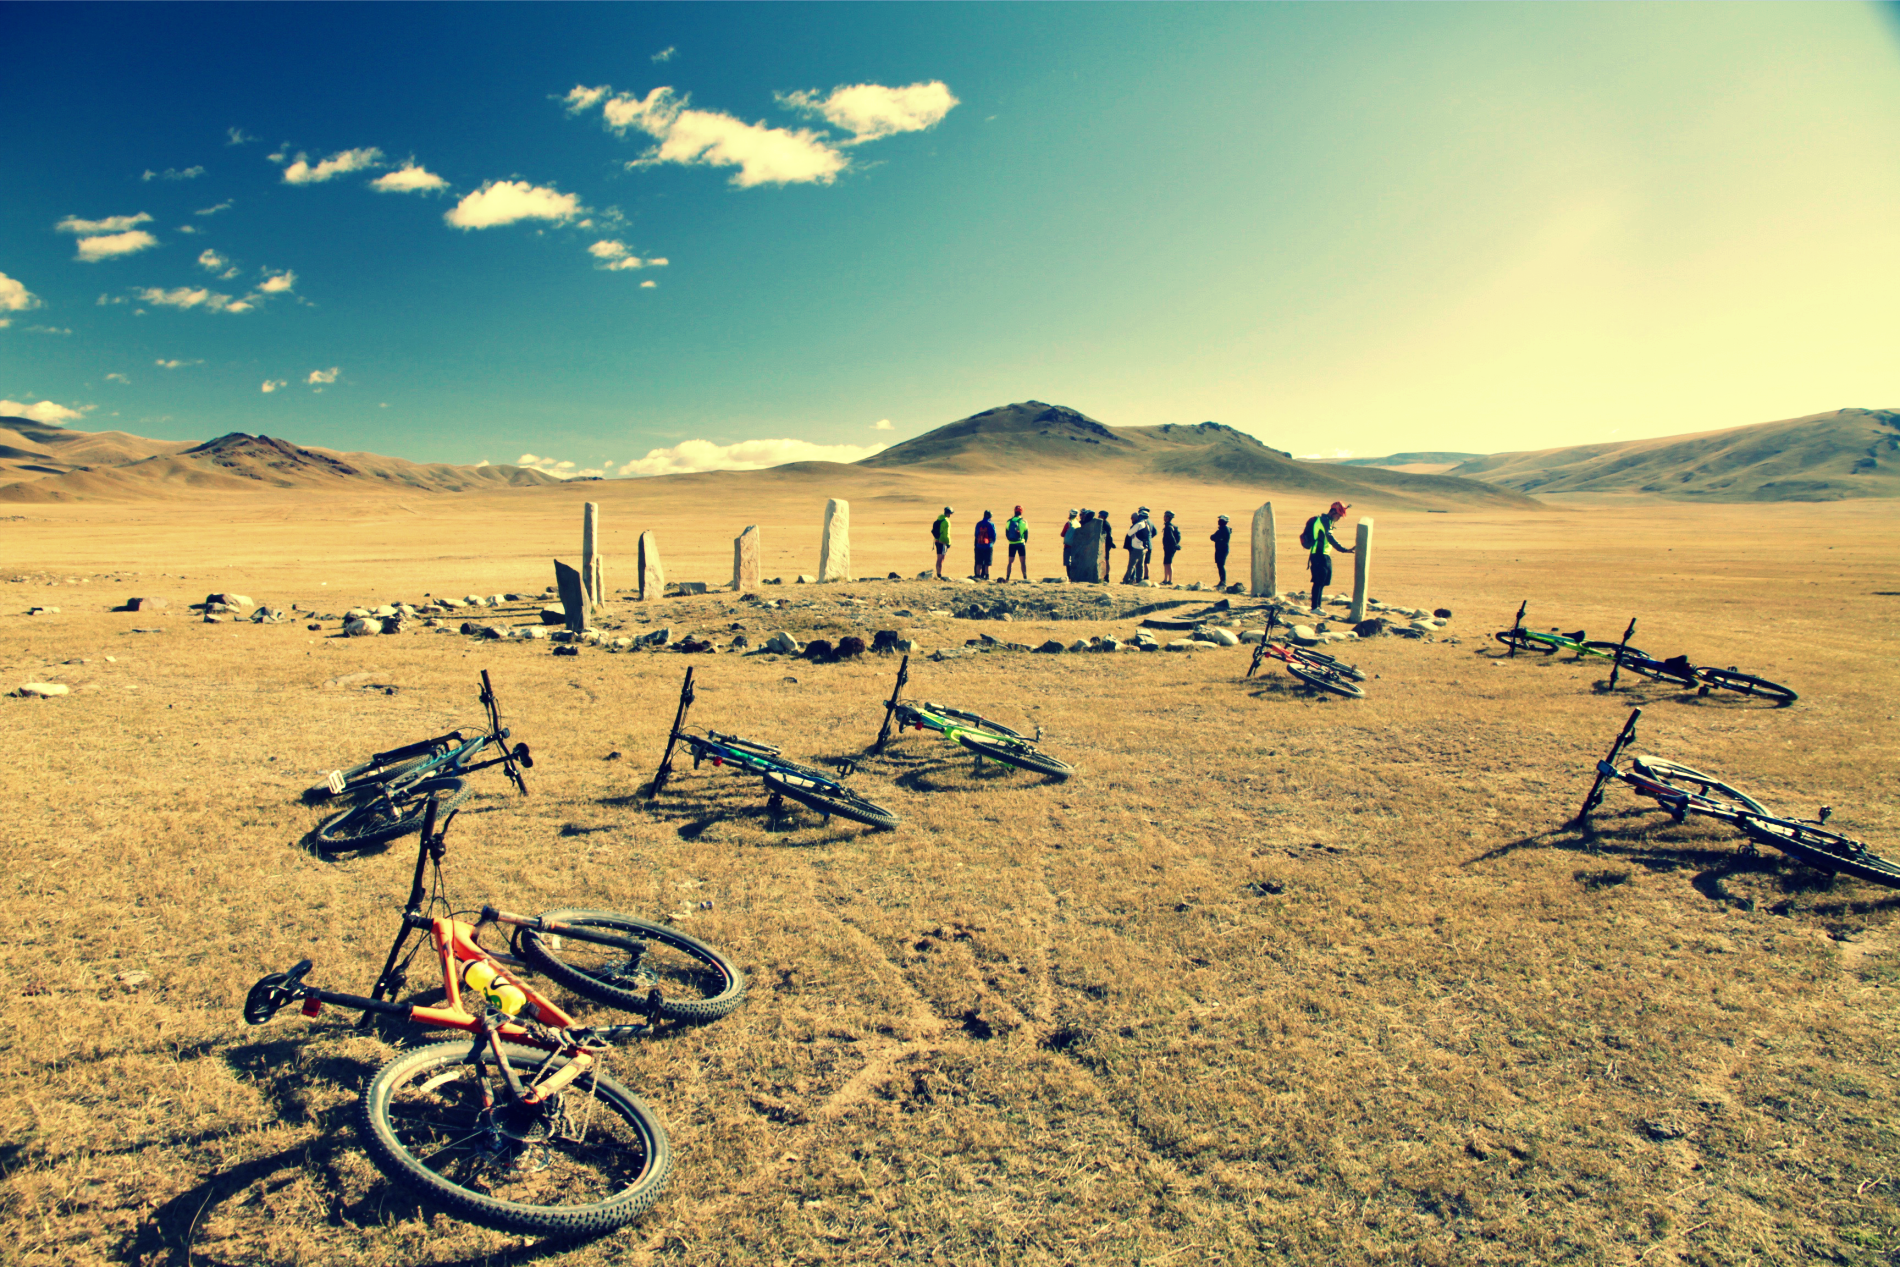 Arkhangai cycling trip